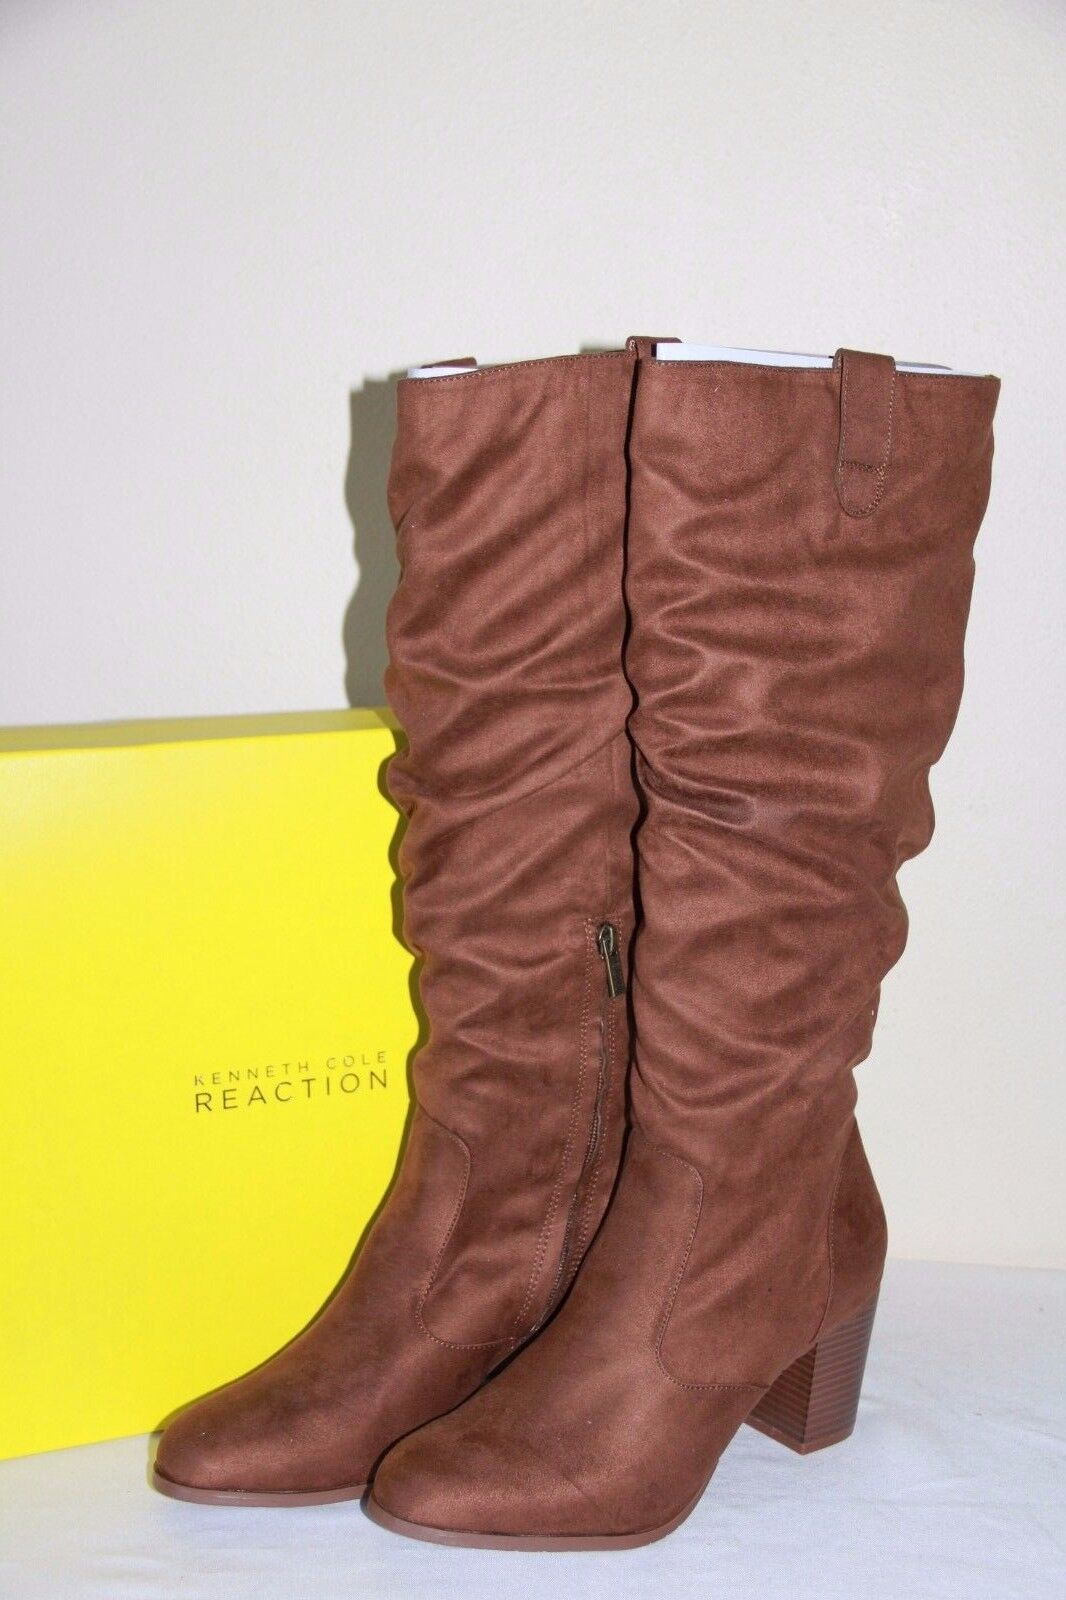 NEW Kenneth Cole Reaction Lady Sway Wouomo scarpe Fashion Style Winter stivali